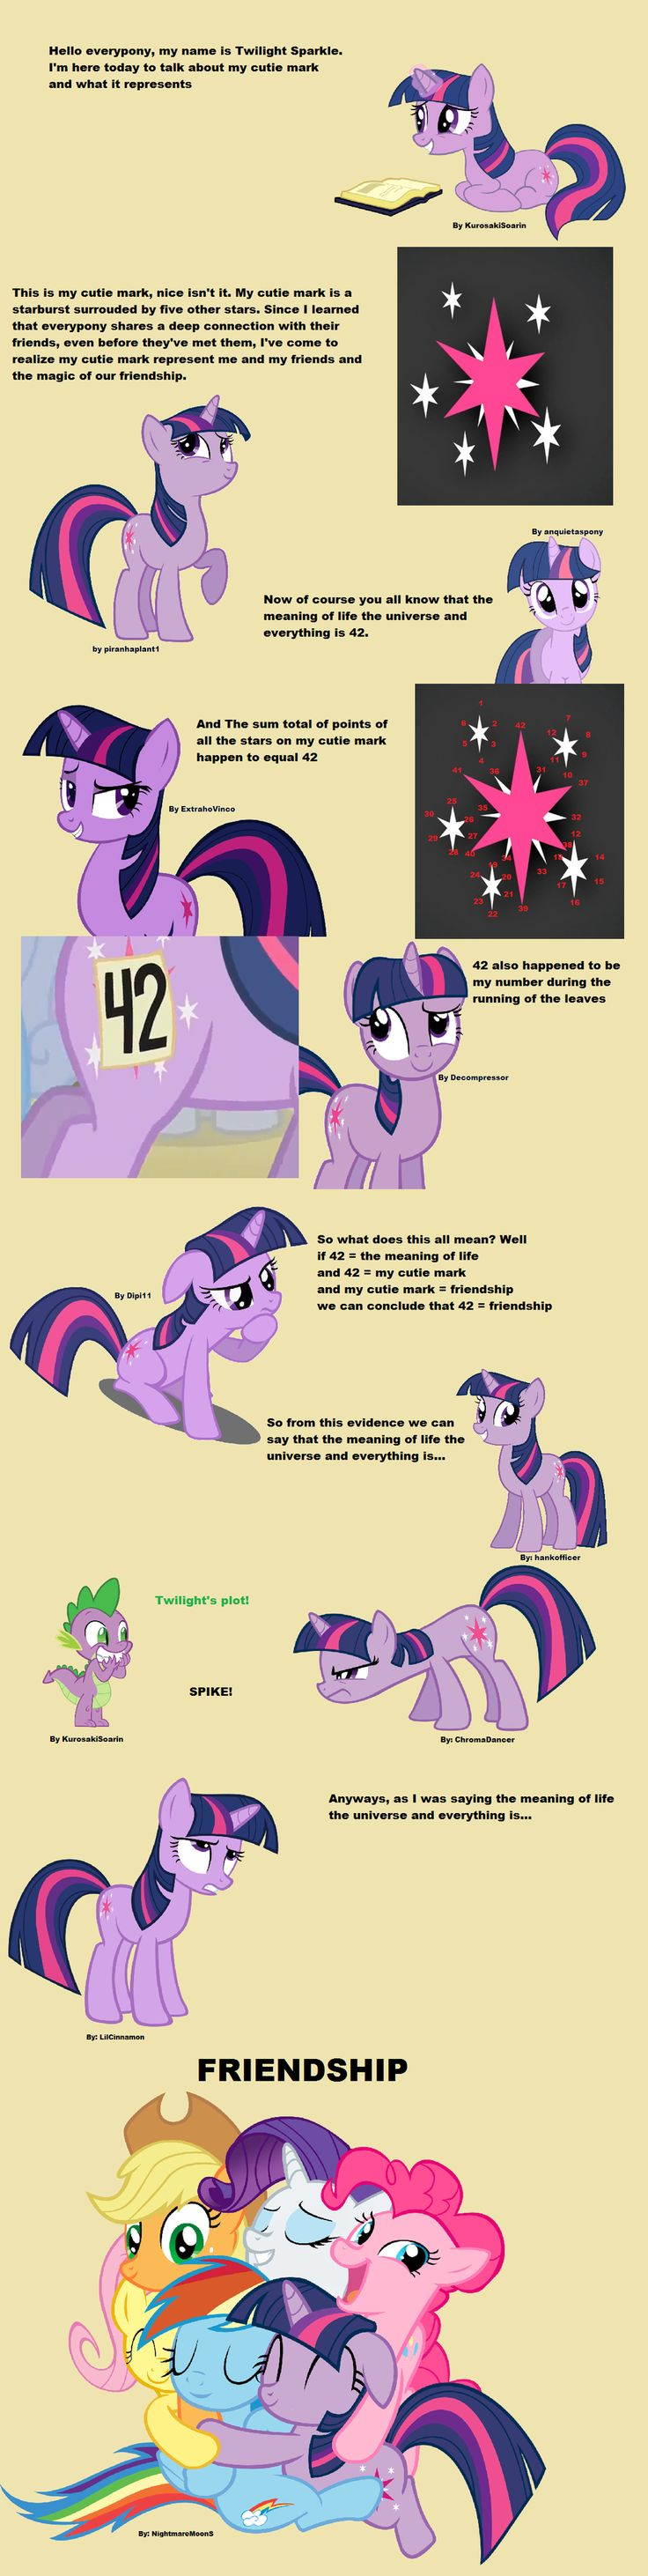 The answer to the meaning of life is by Twilight Sparkle from MLP